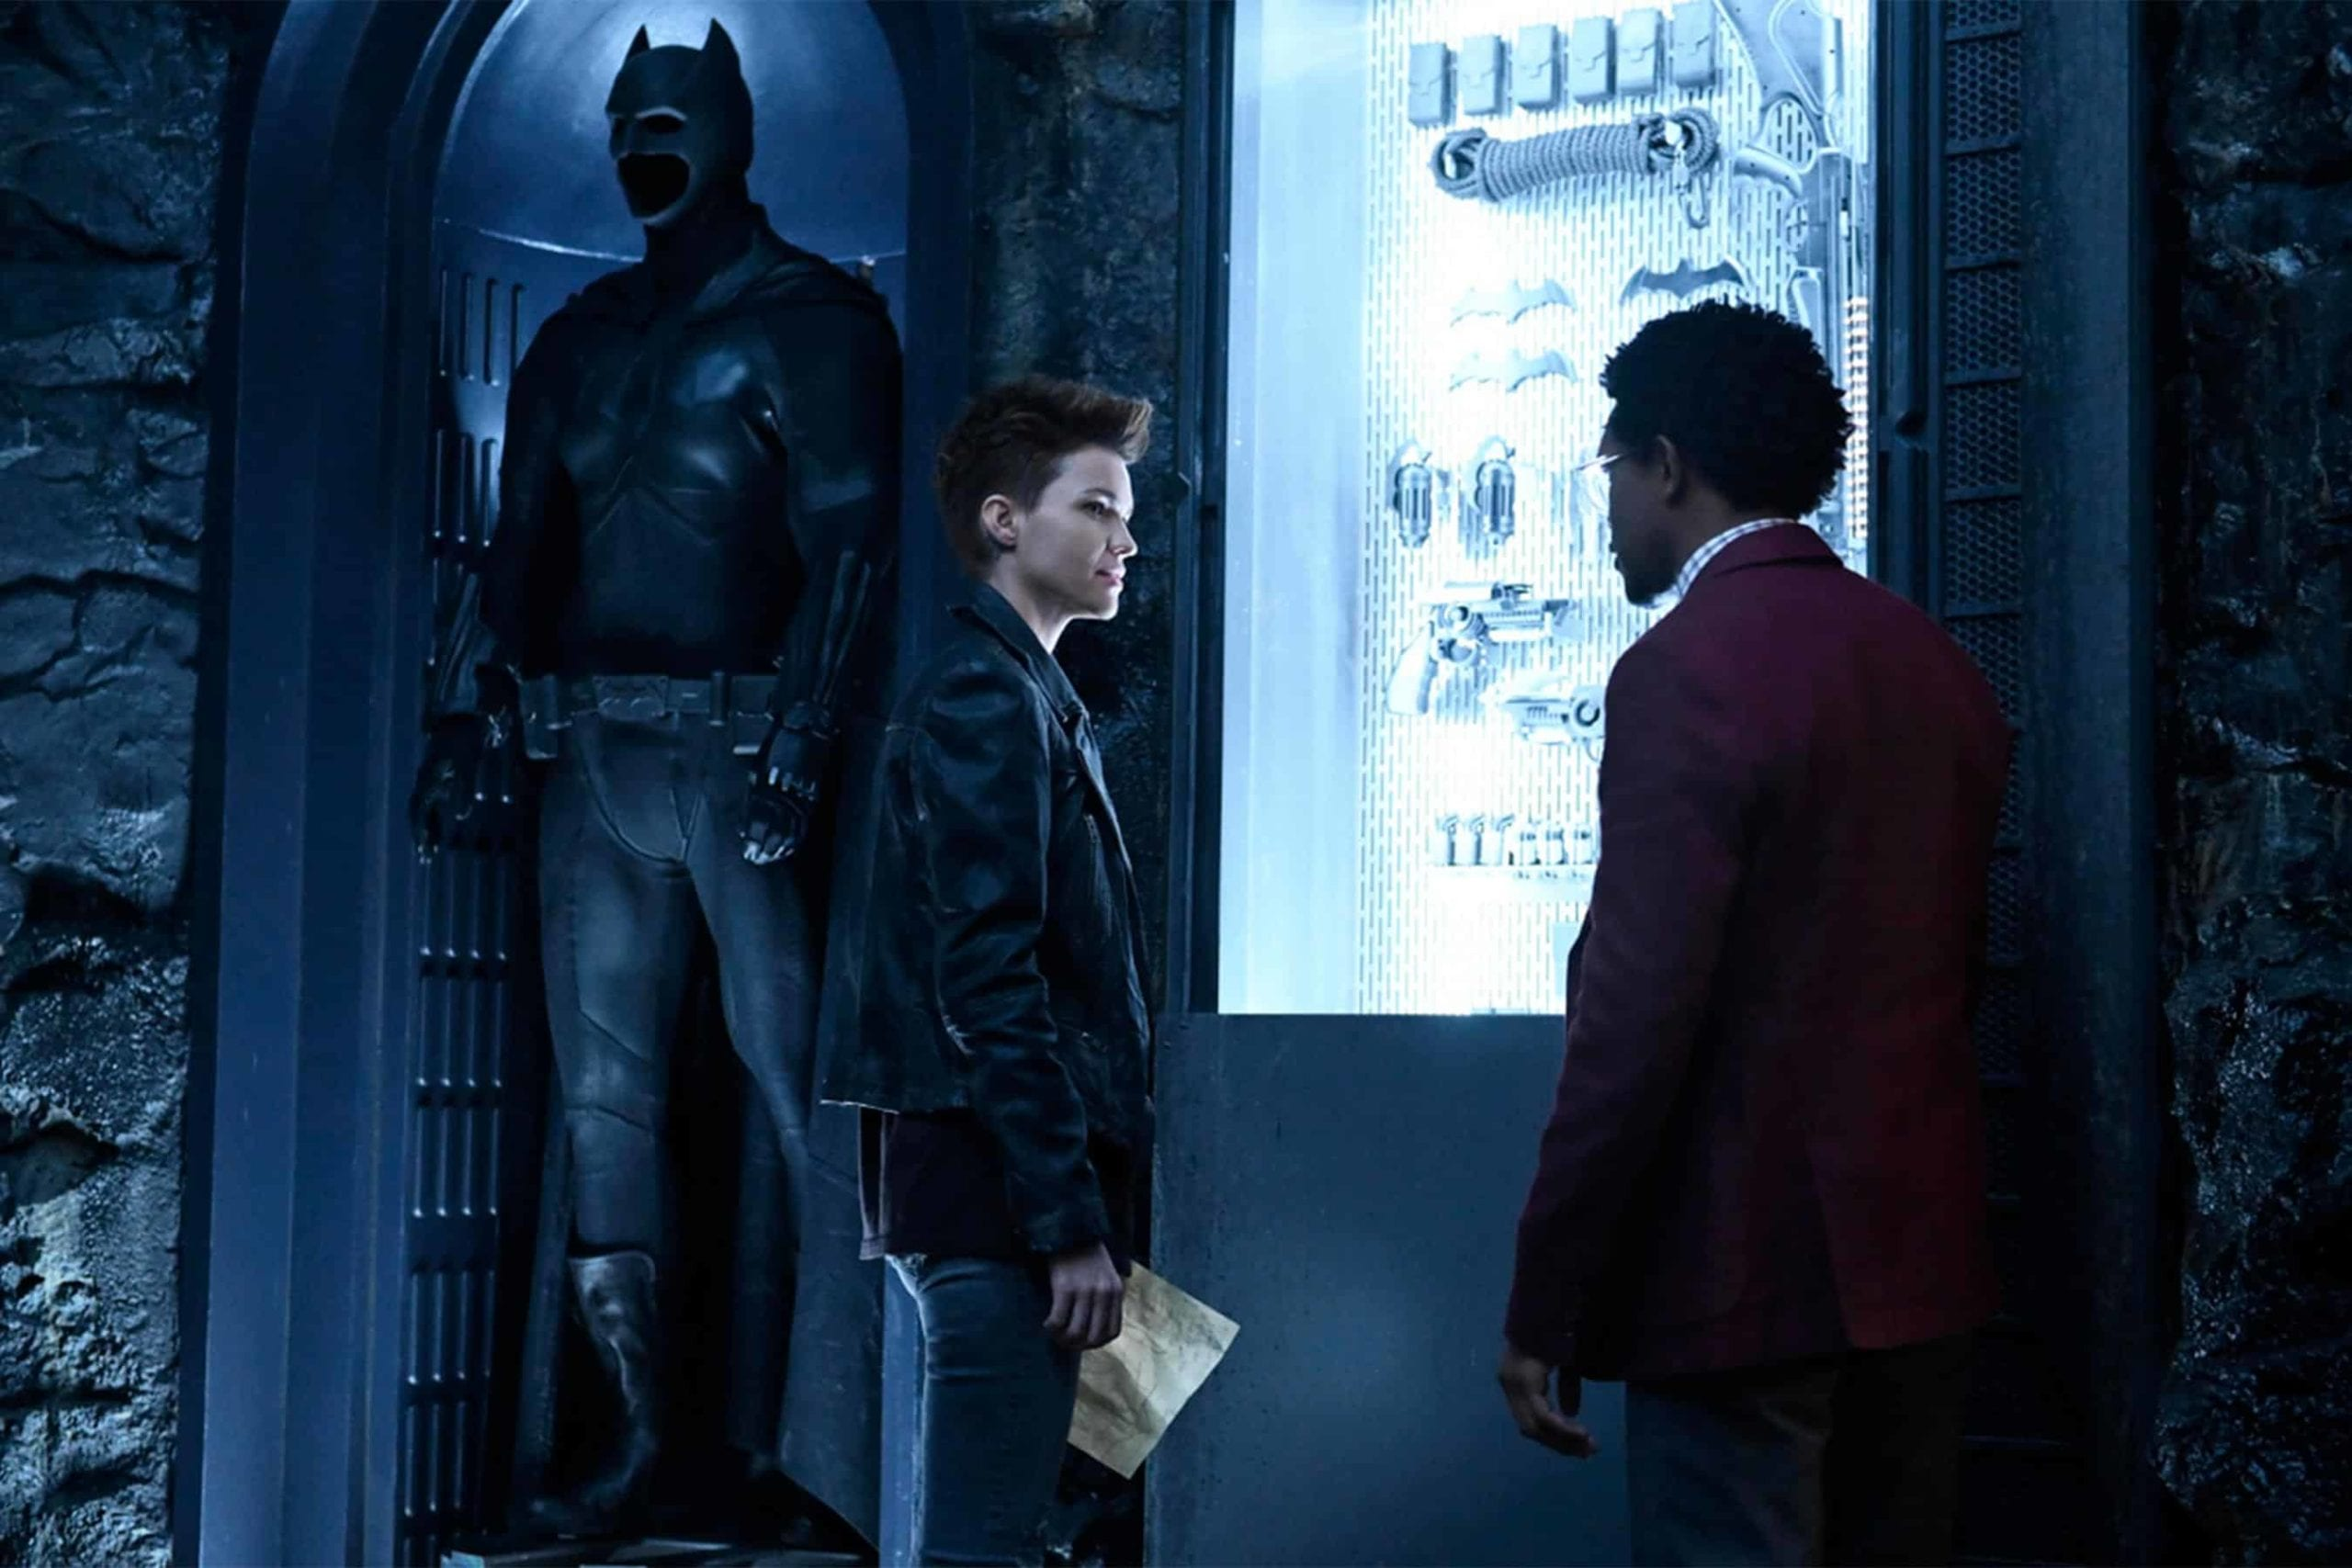 Batwoman to appear in Infinite Earths crossover